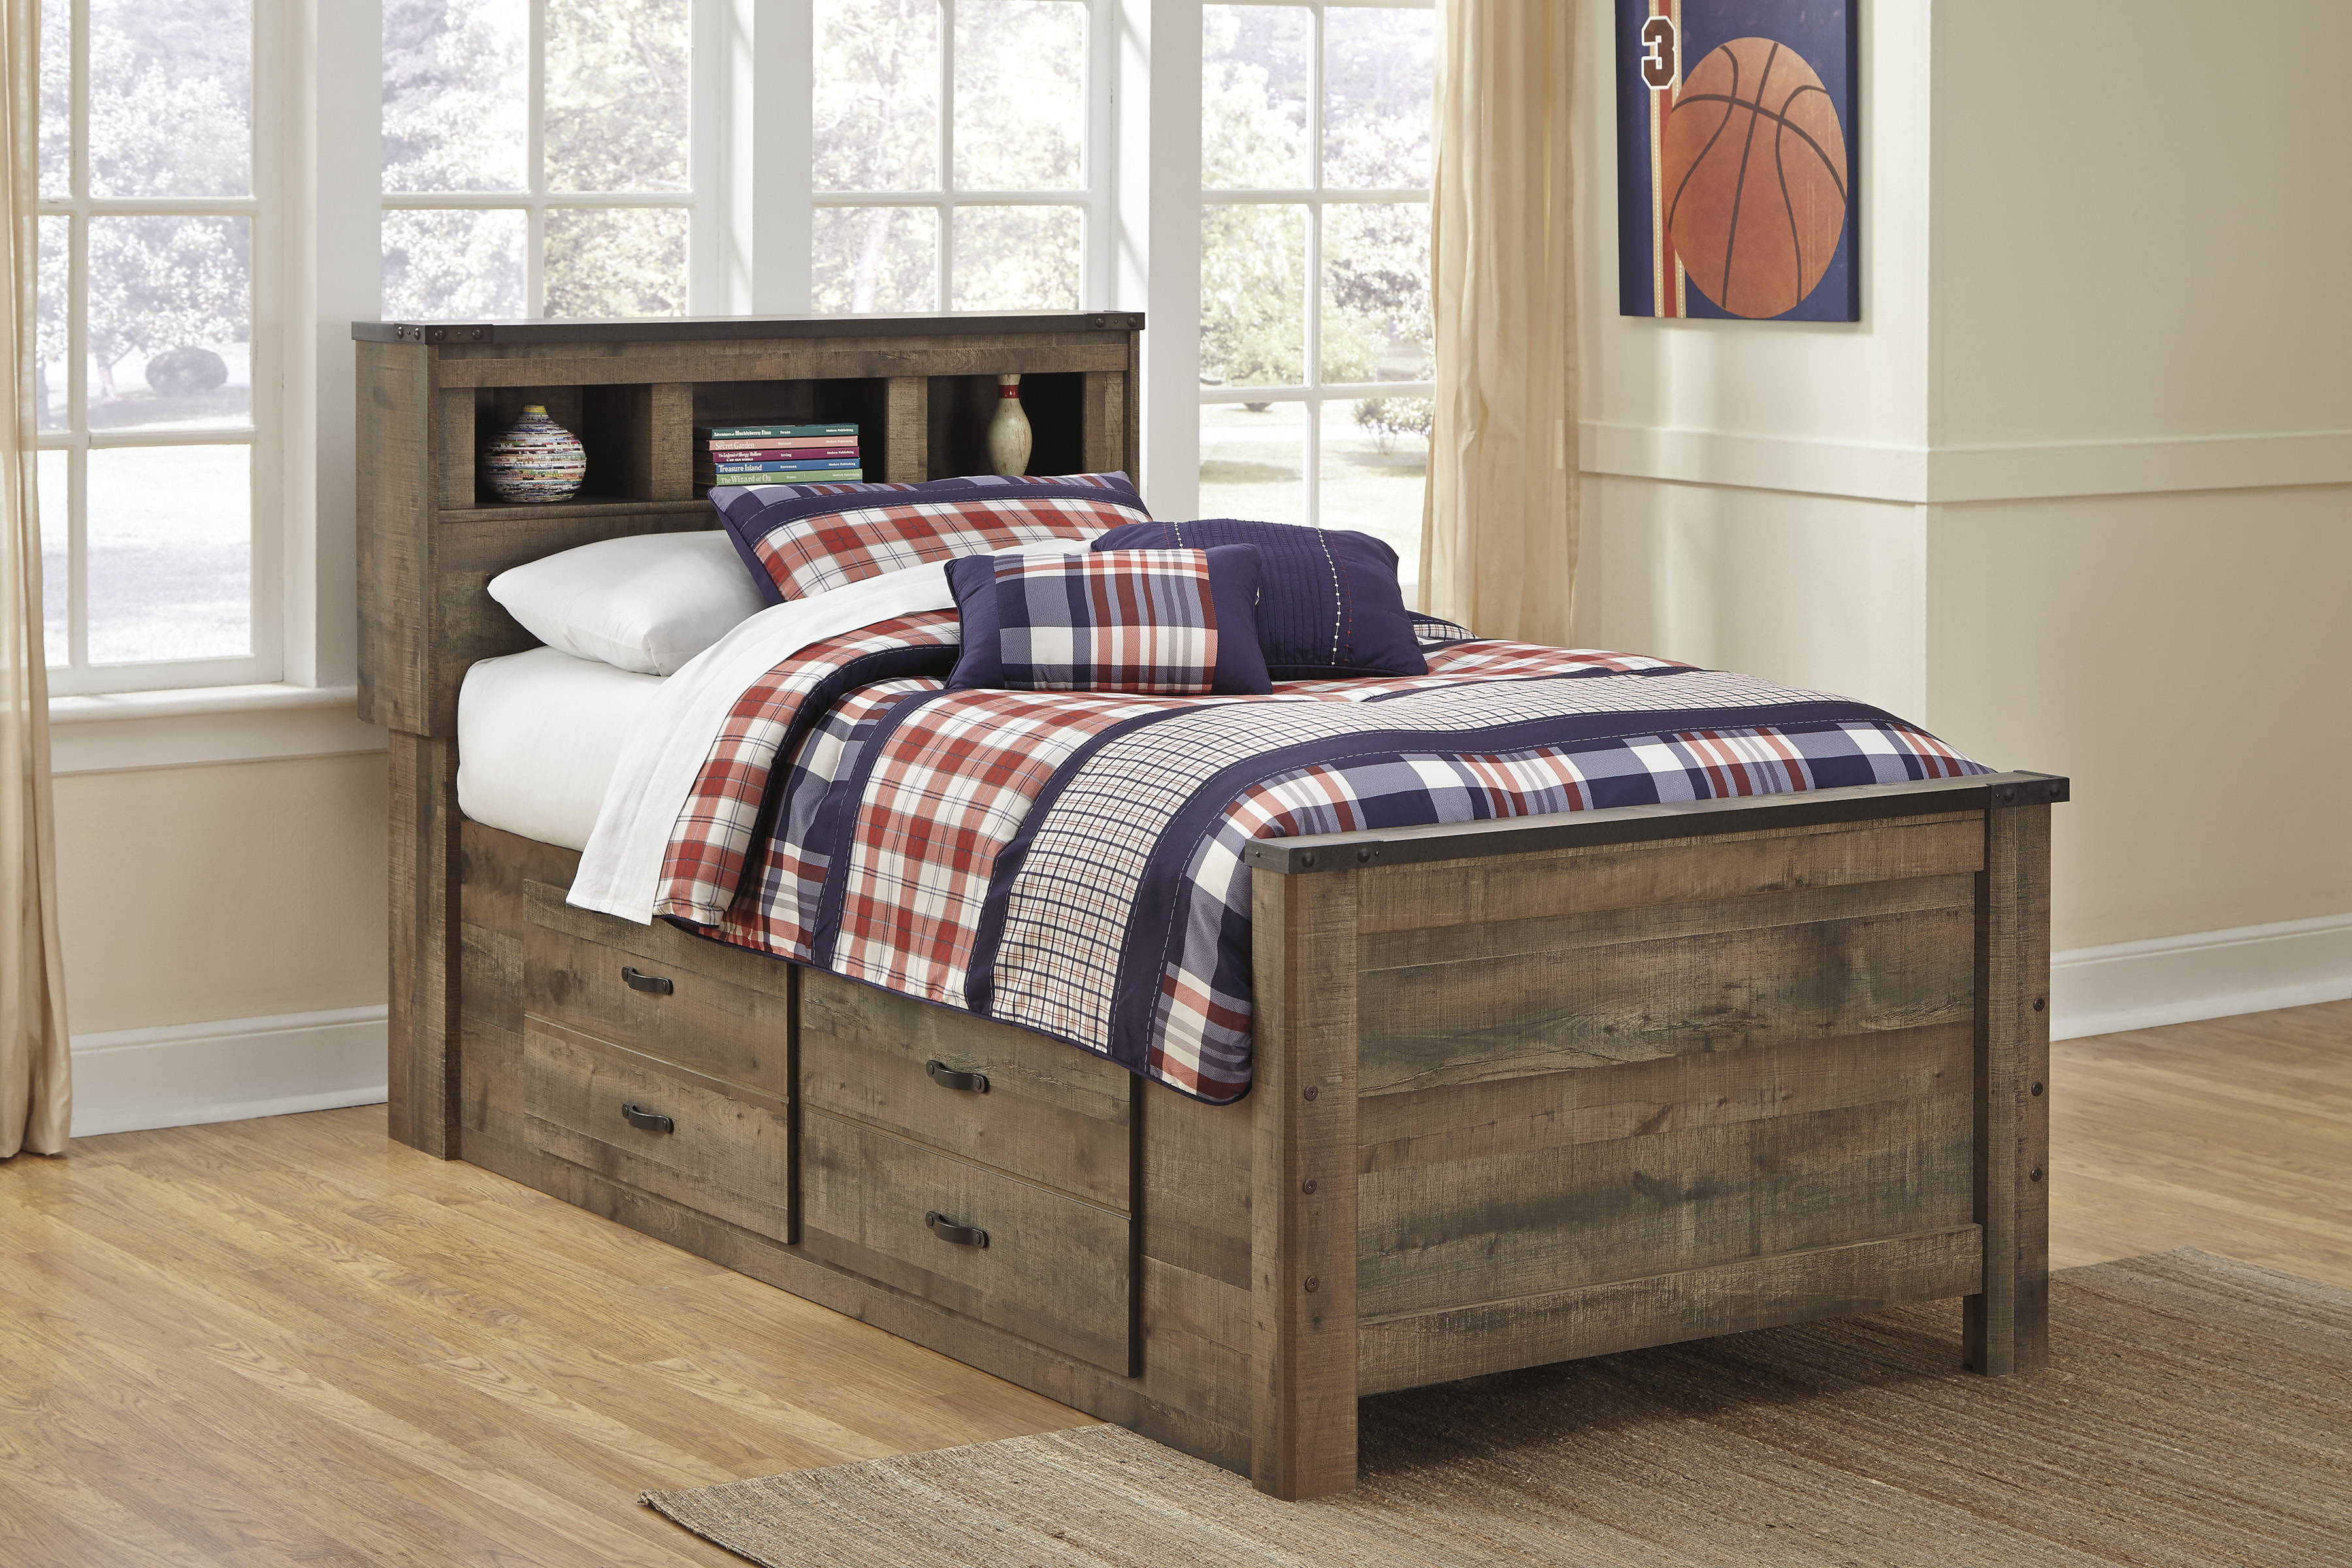 Ashley Furniture Trinell Twin Bookcase Bed with Underbed ...